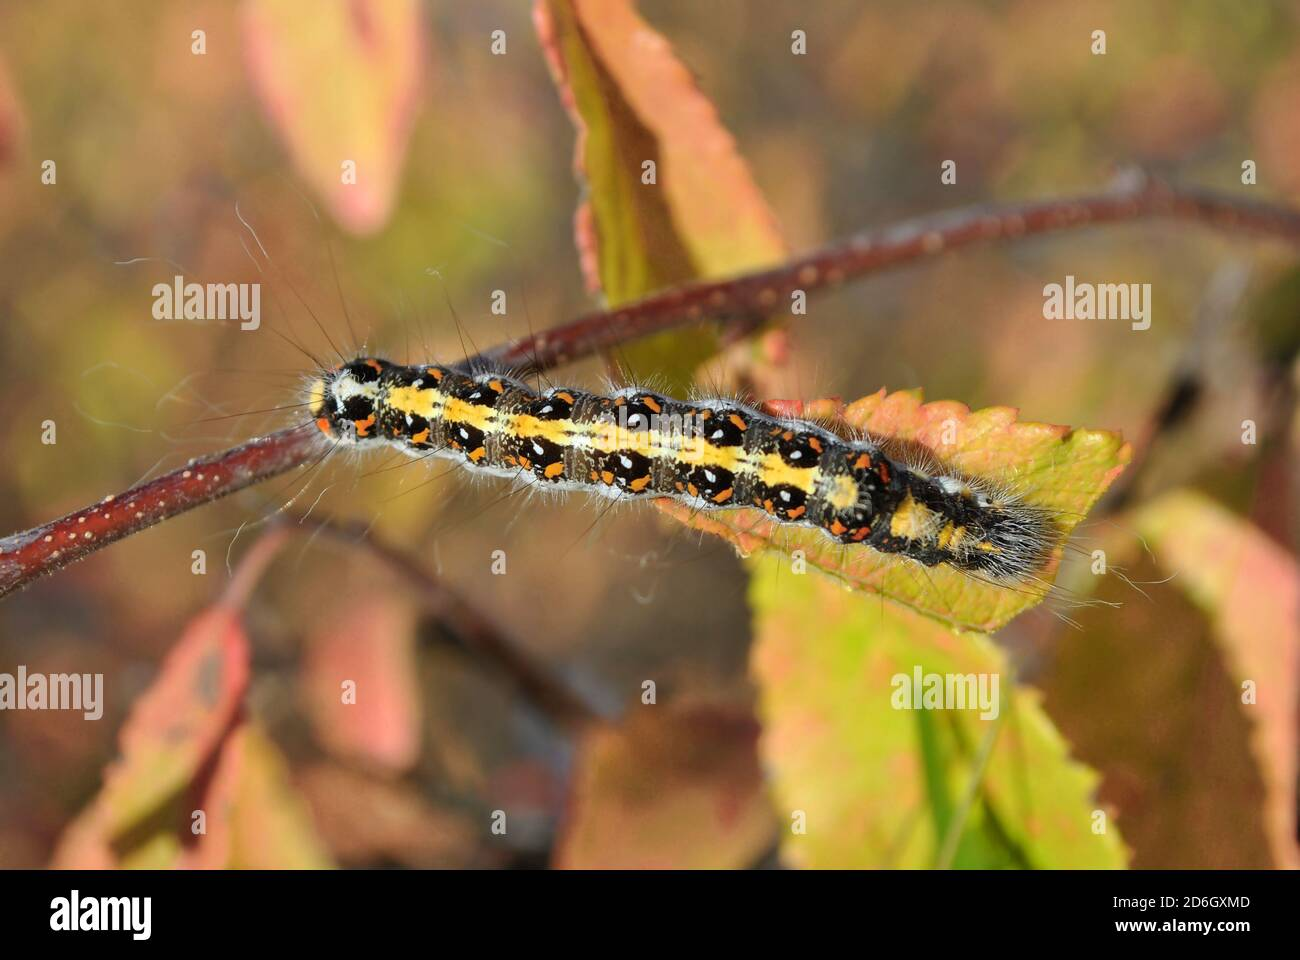 Eastern Tent caterpillar (hairy with red and white spots) crawling on twig top view, leaf blurry background Stock Photo